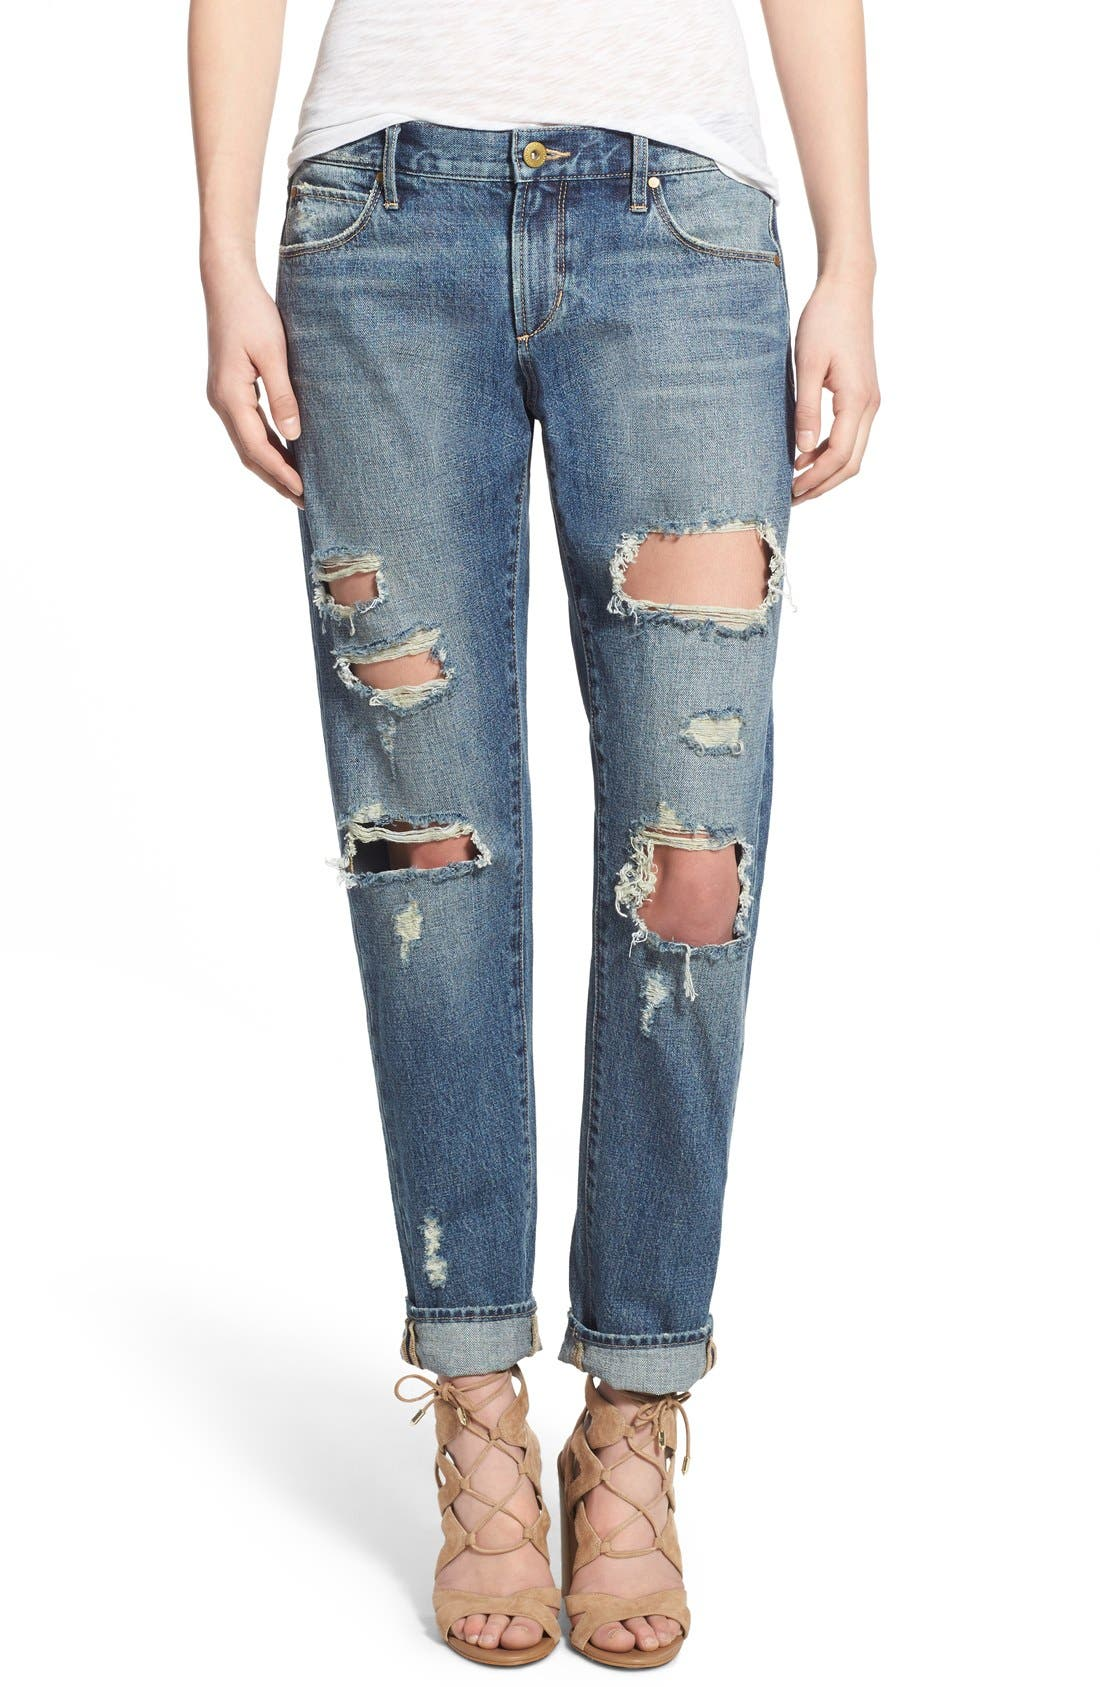 ARTICLES OF SOCIETY 'Janis' Destroyed Boyfriend Jeans, Main, color, 408